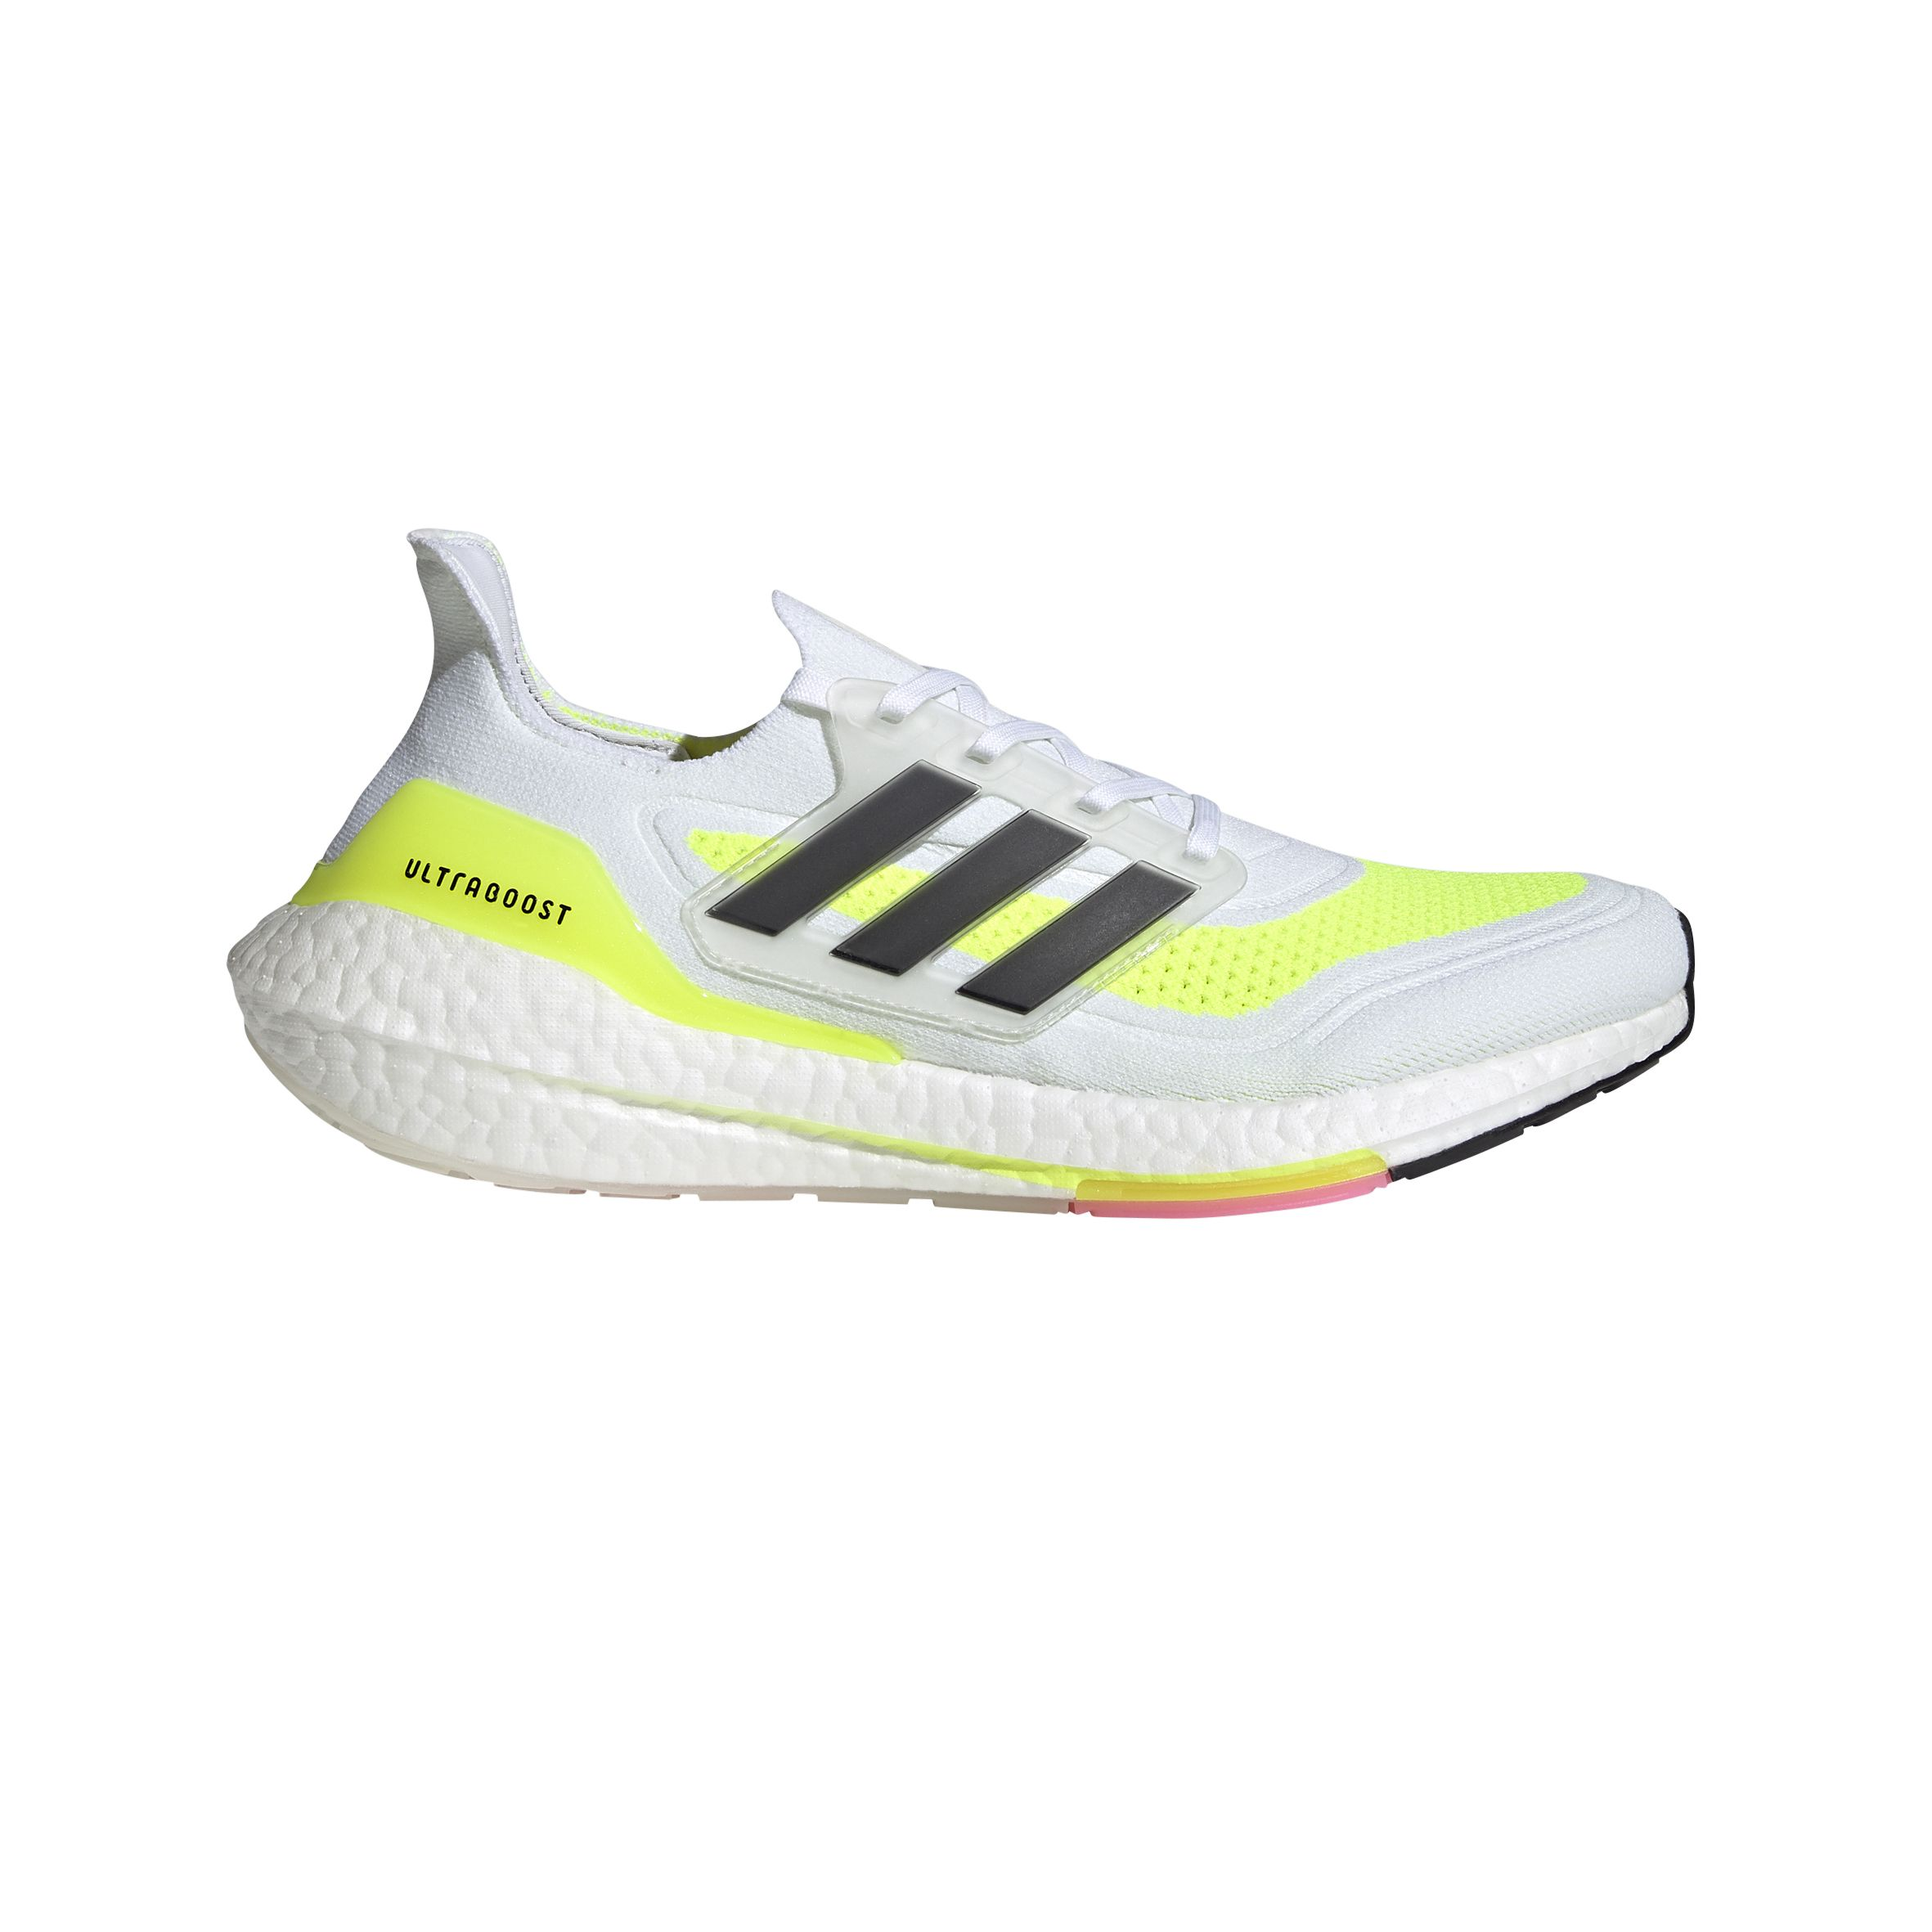 Best Gym Trainers 2021 | 17 Styles for Every Workout